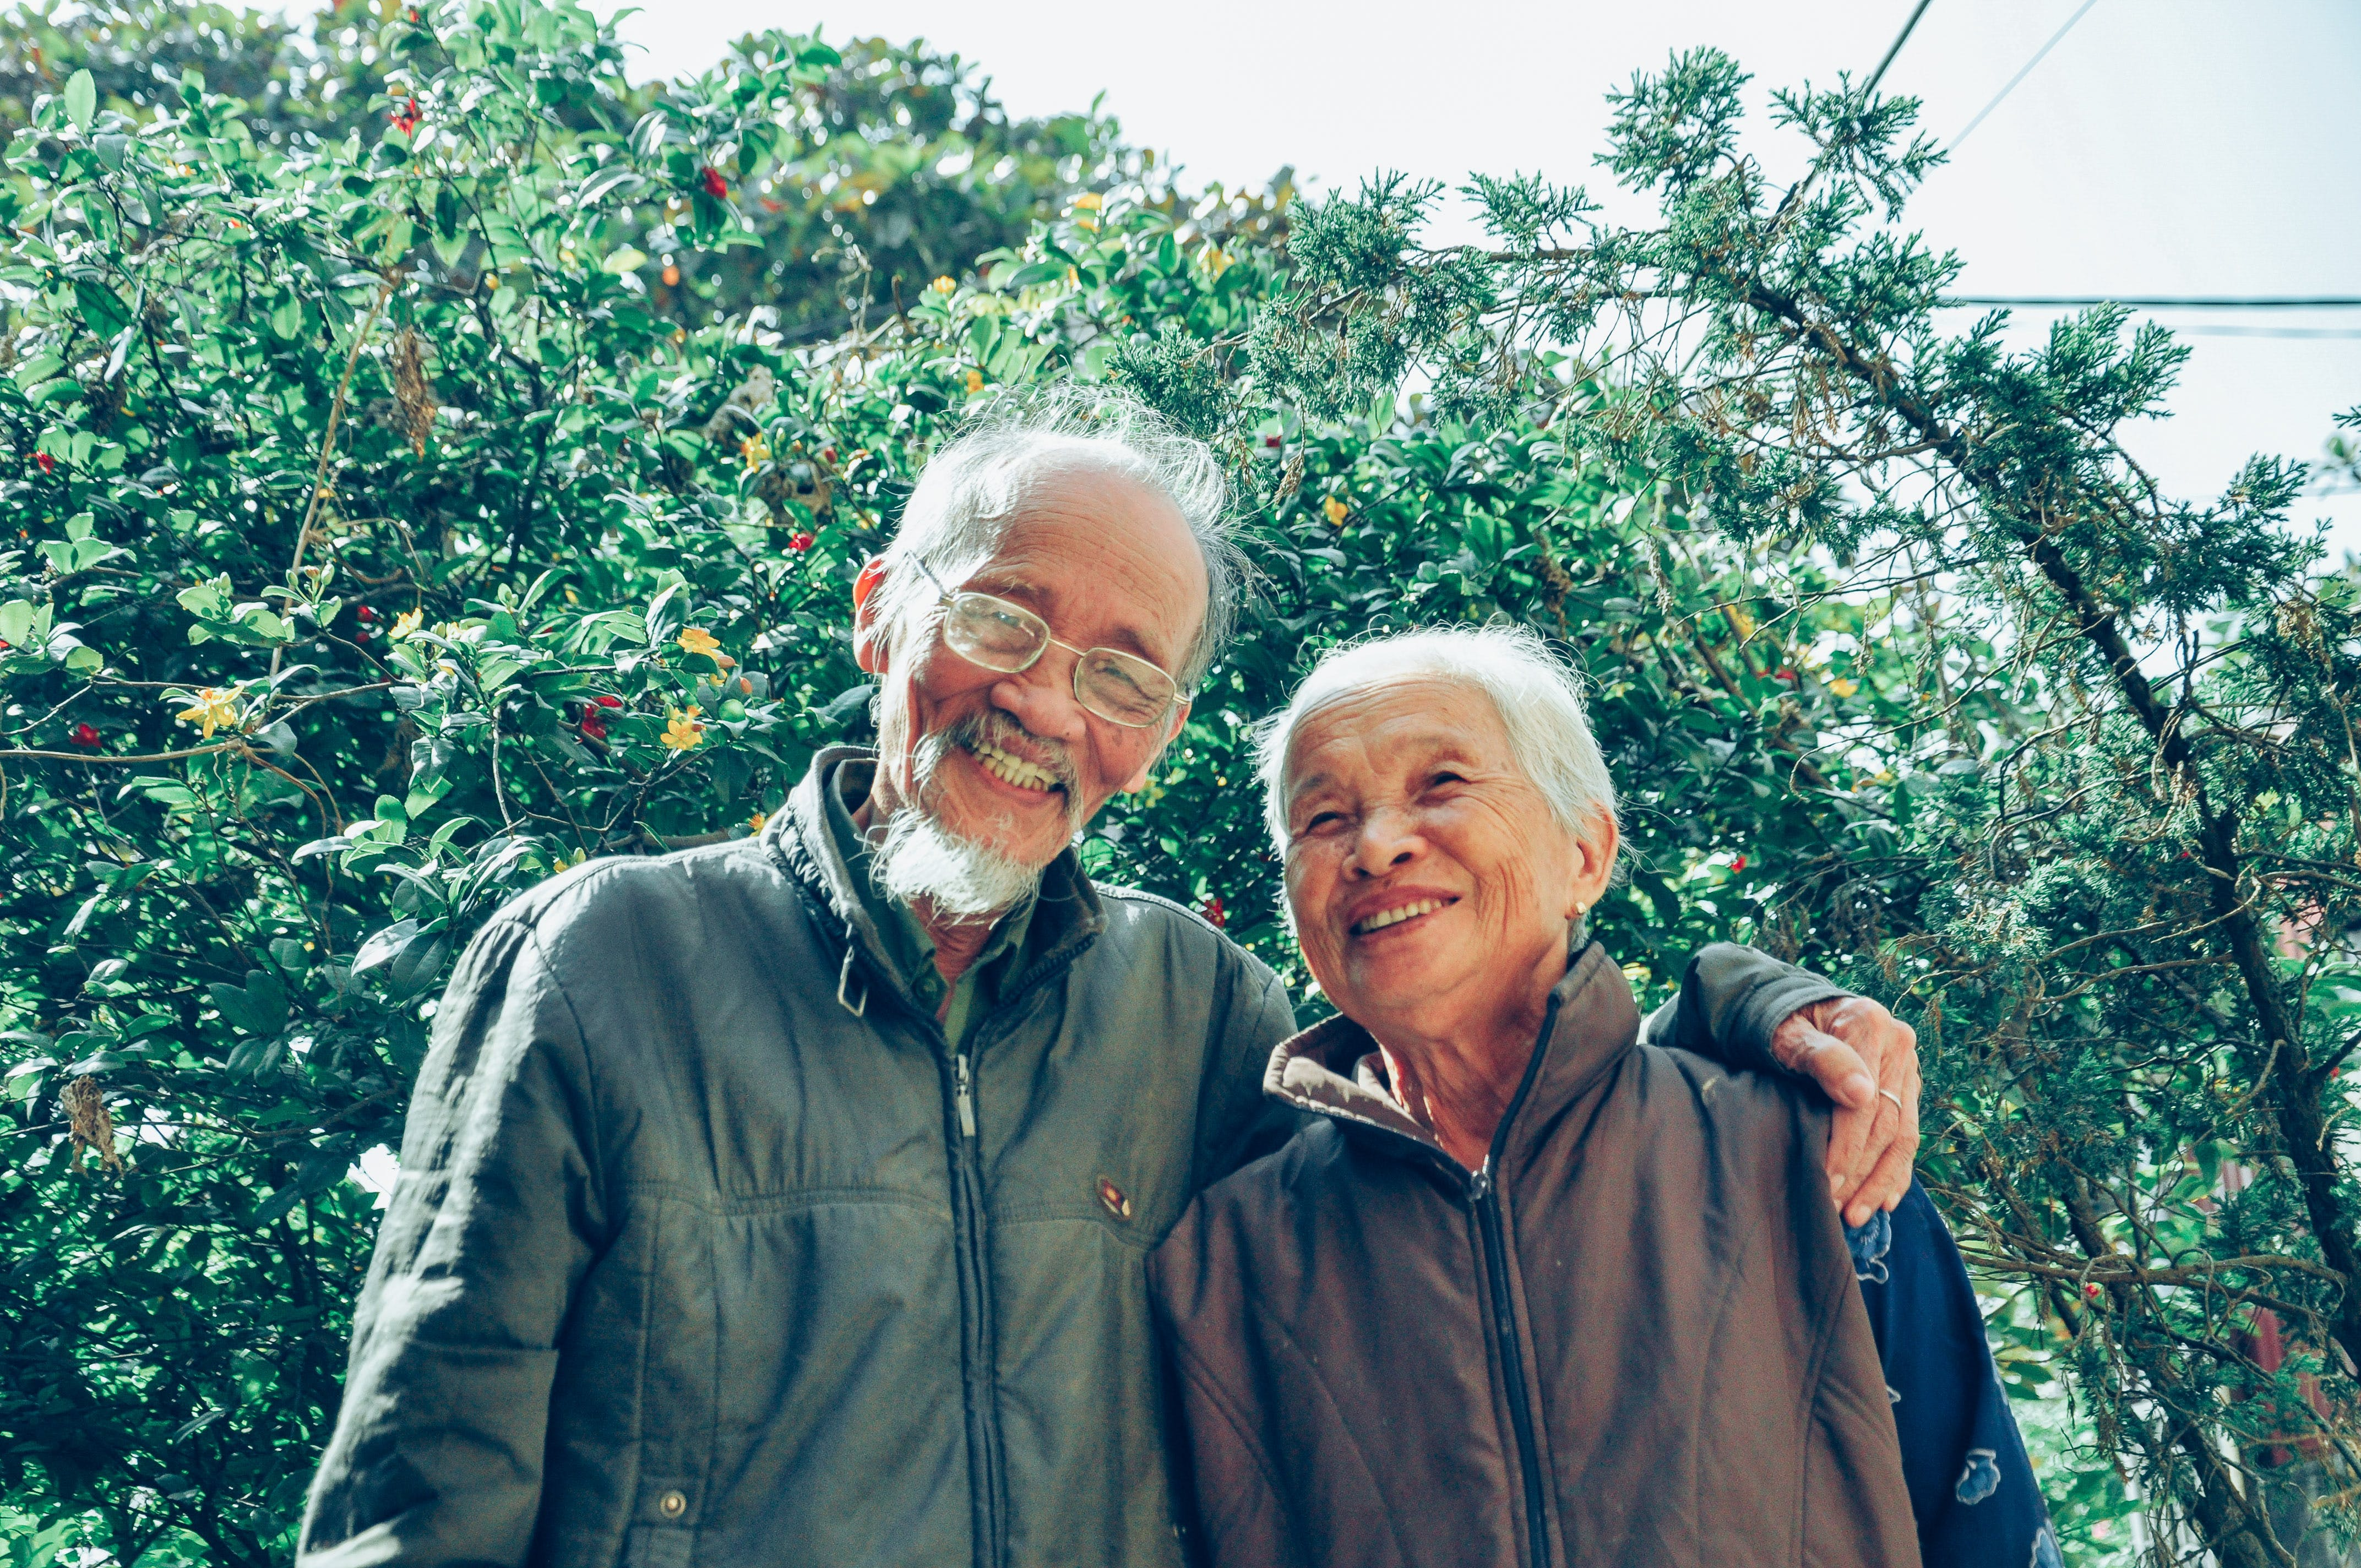 Smiling Man and Woman Wearing Jackets